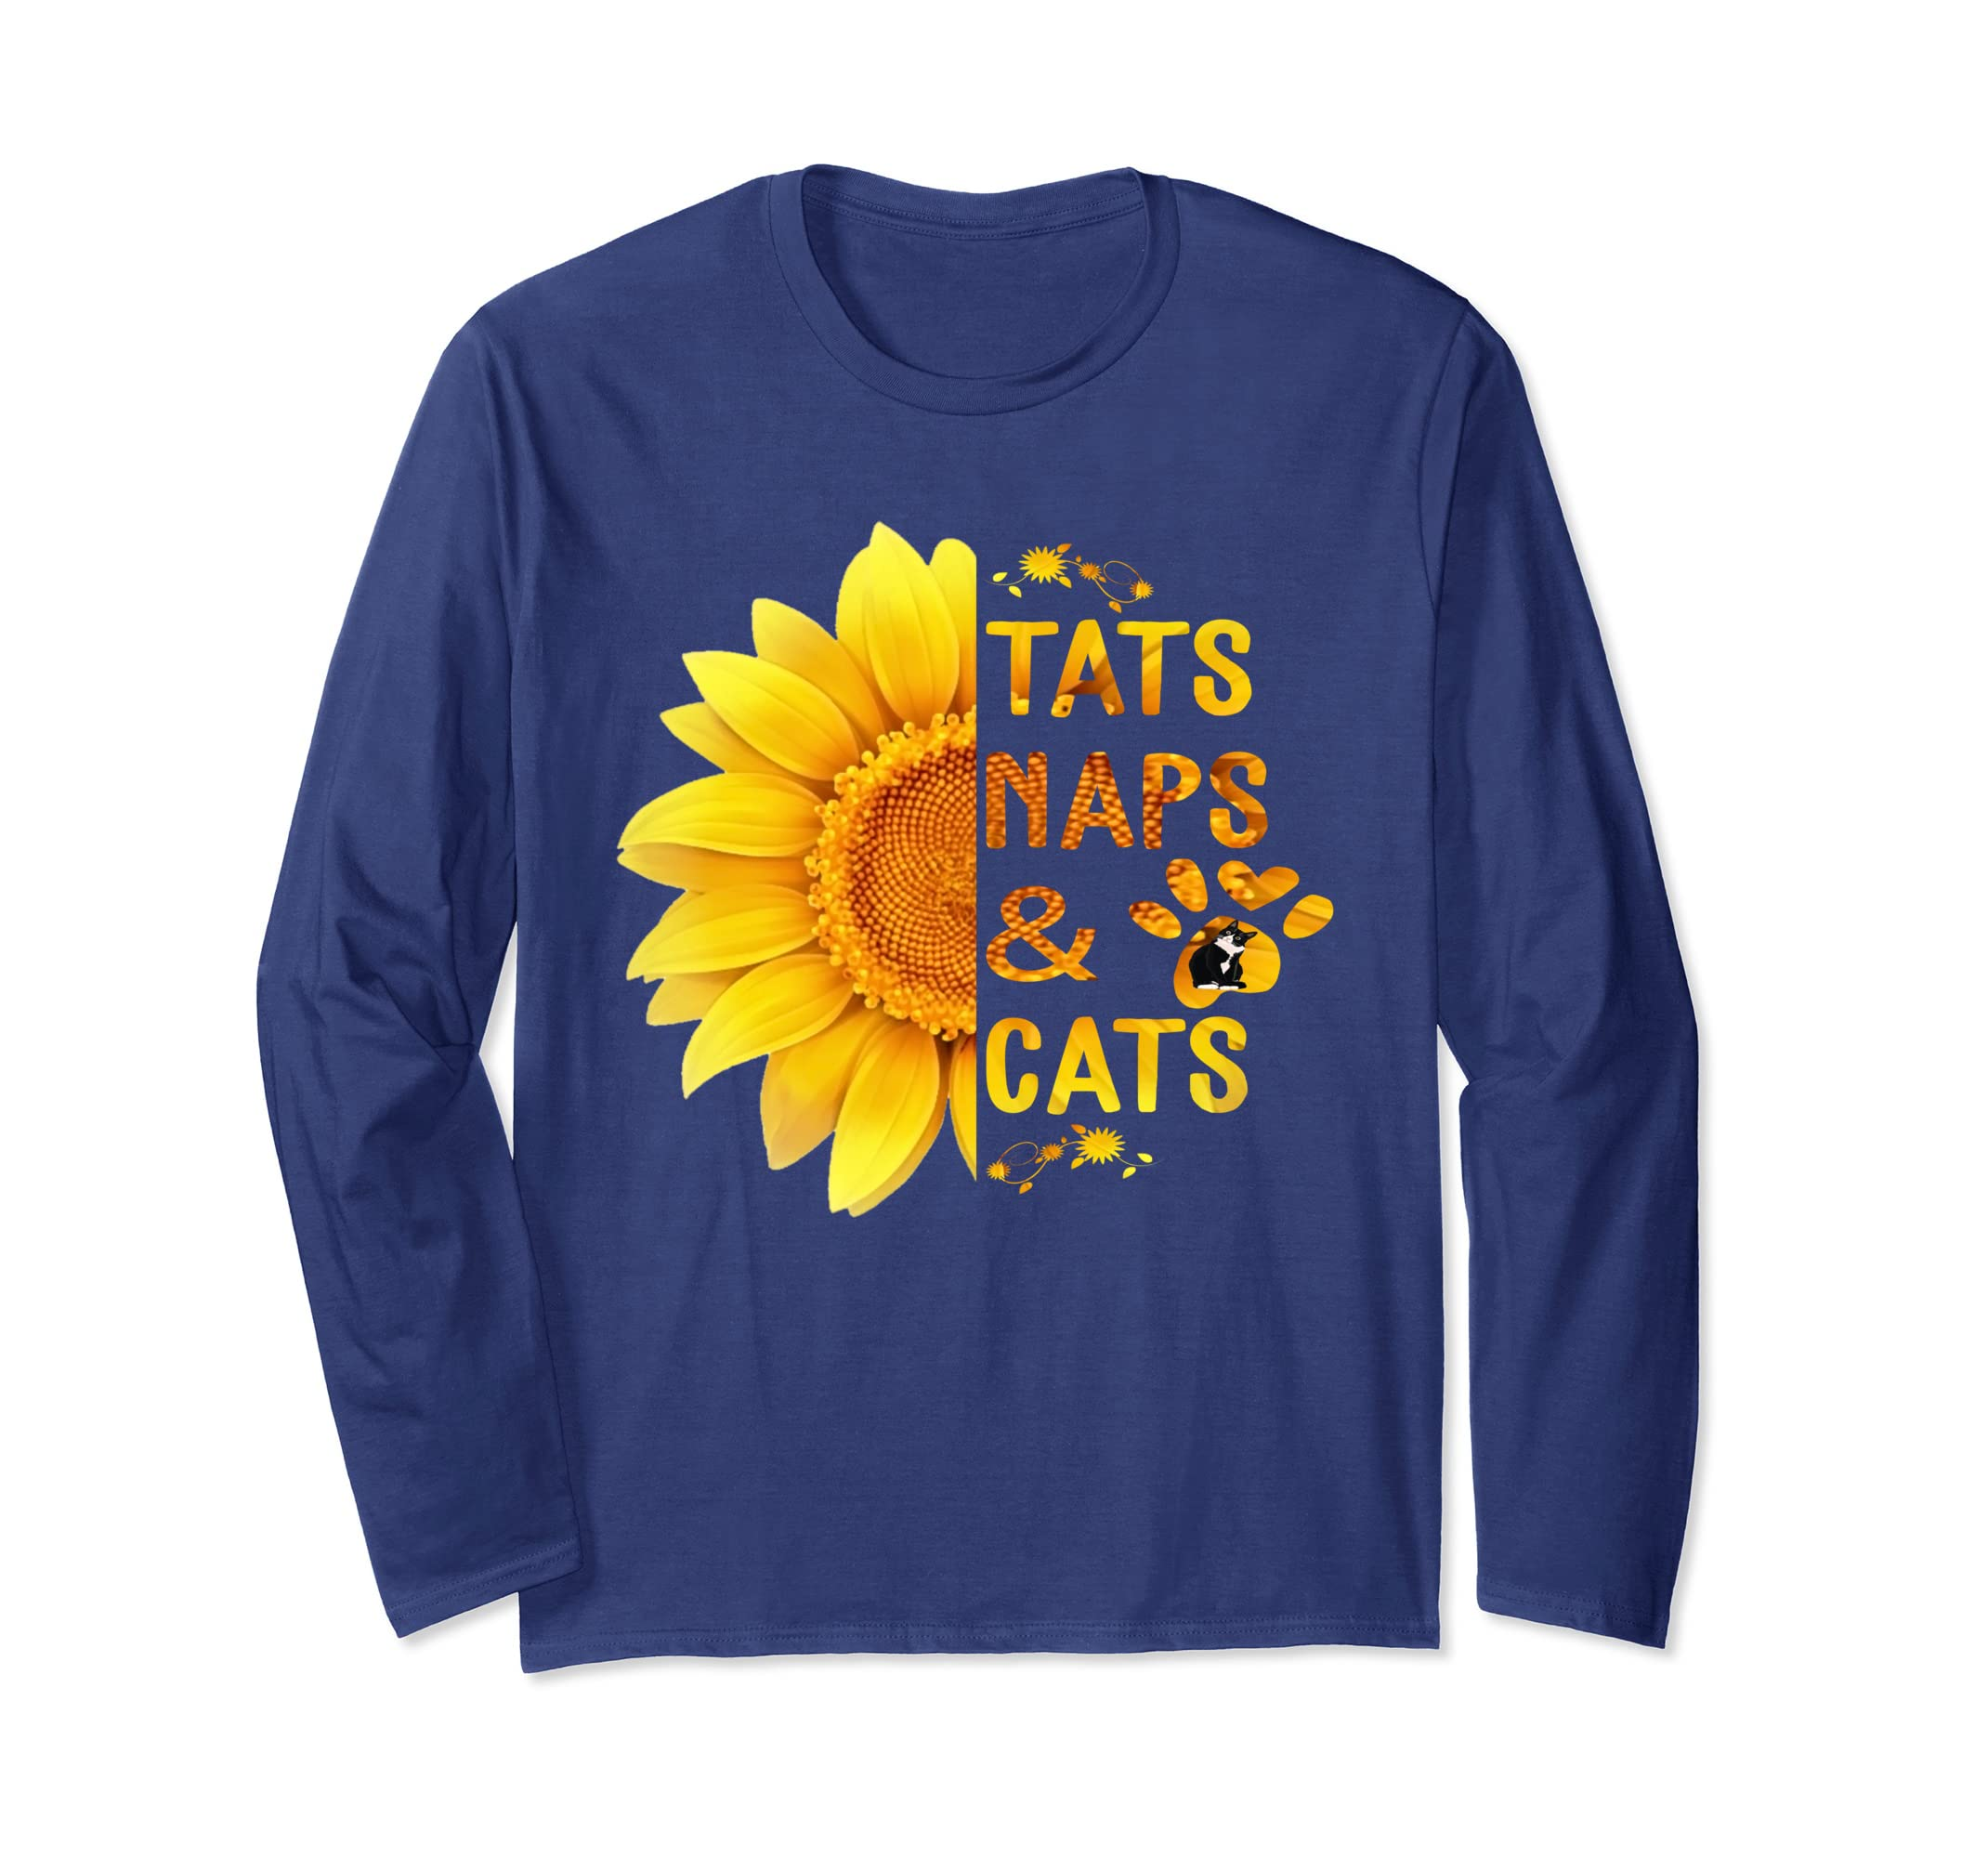 f67ee85c Amazon.com: Tats naps And Cats Sunflower Tshirt - Funny Cat Lover Gift Long  Sleeve T-Shirt: Clothing